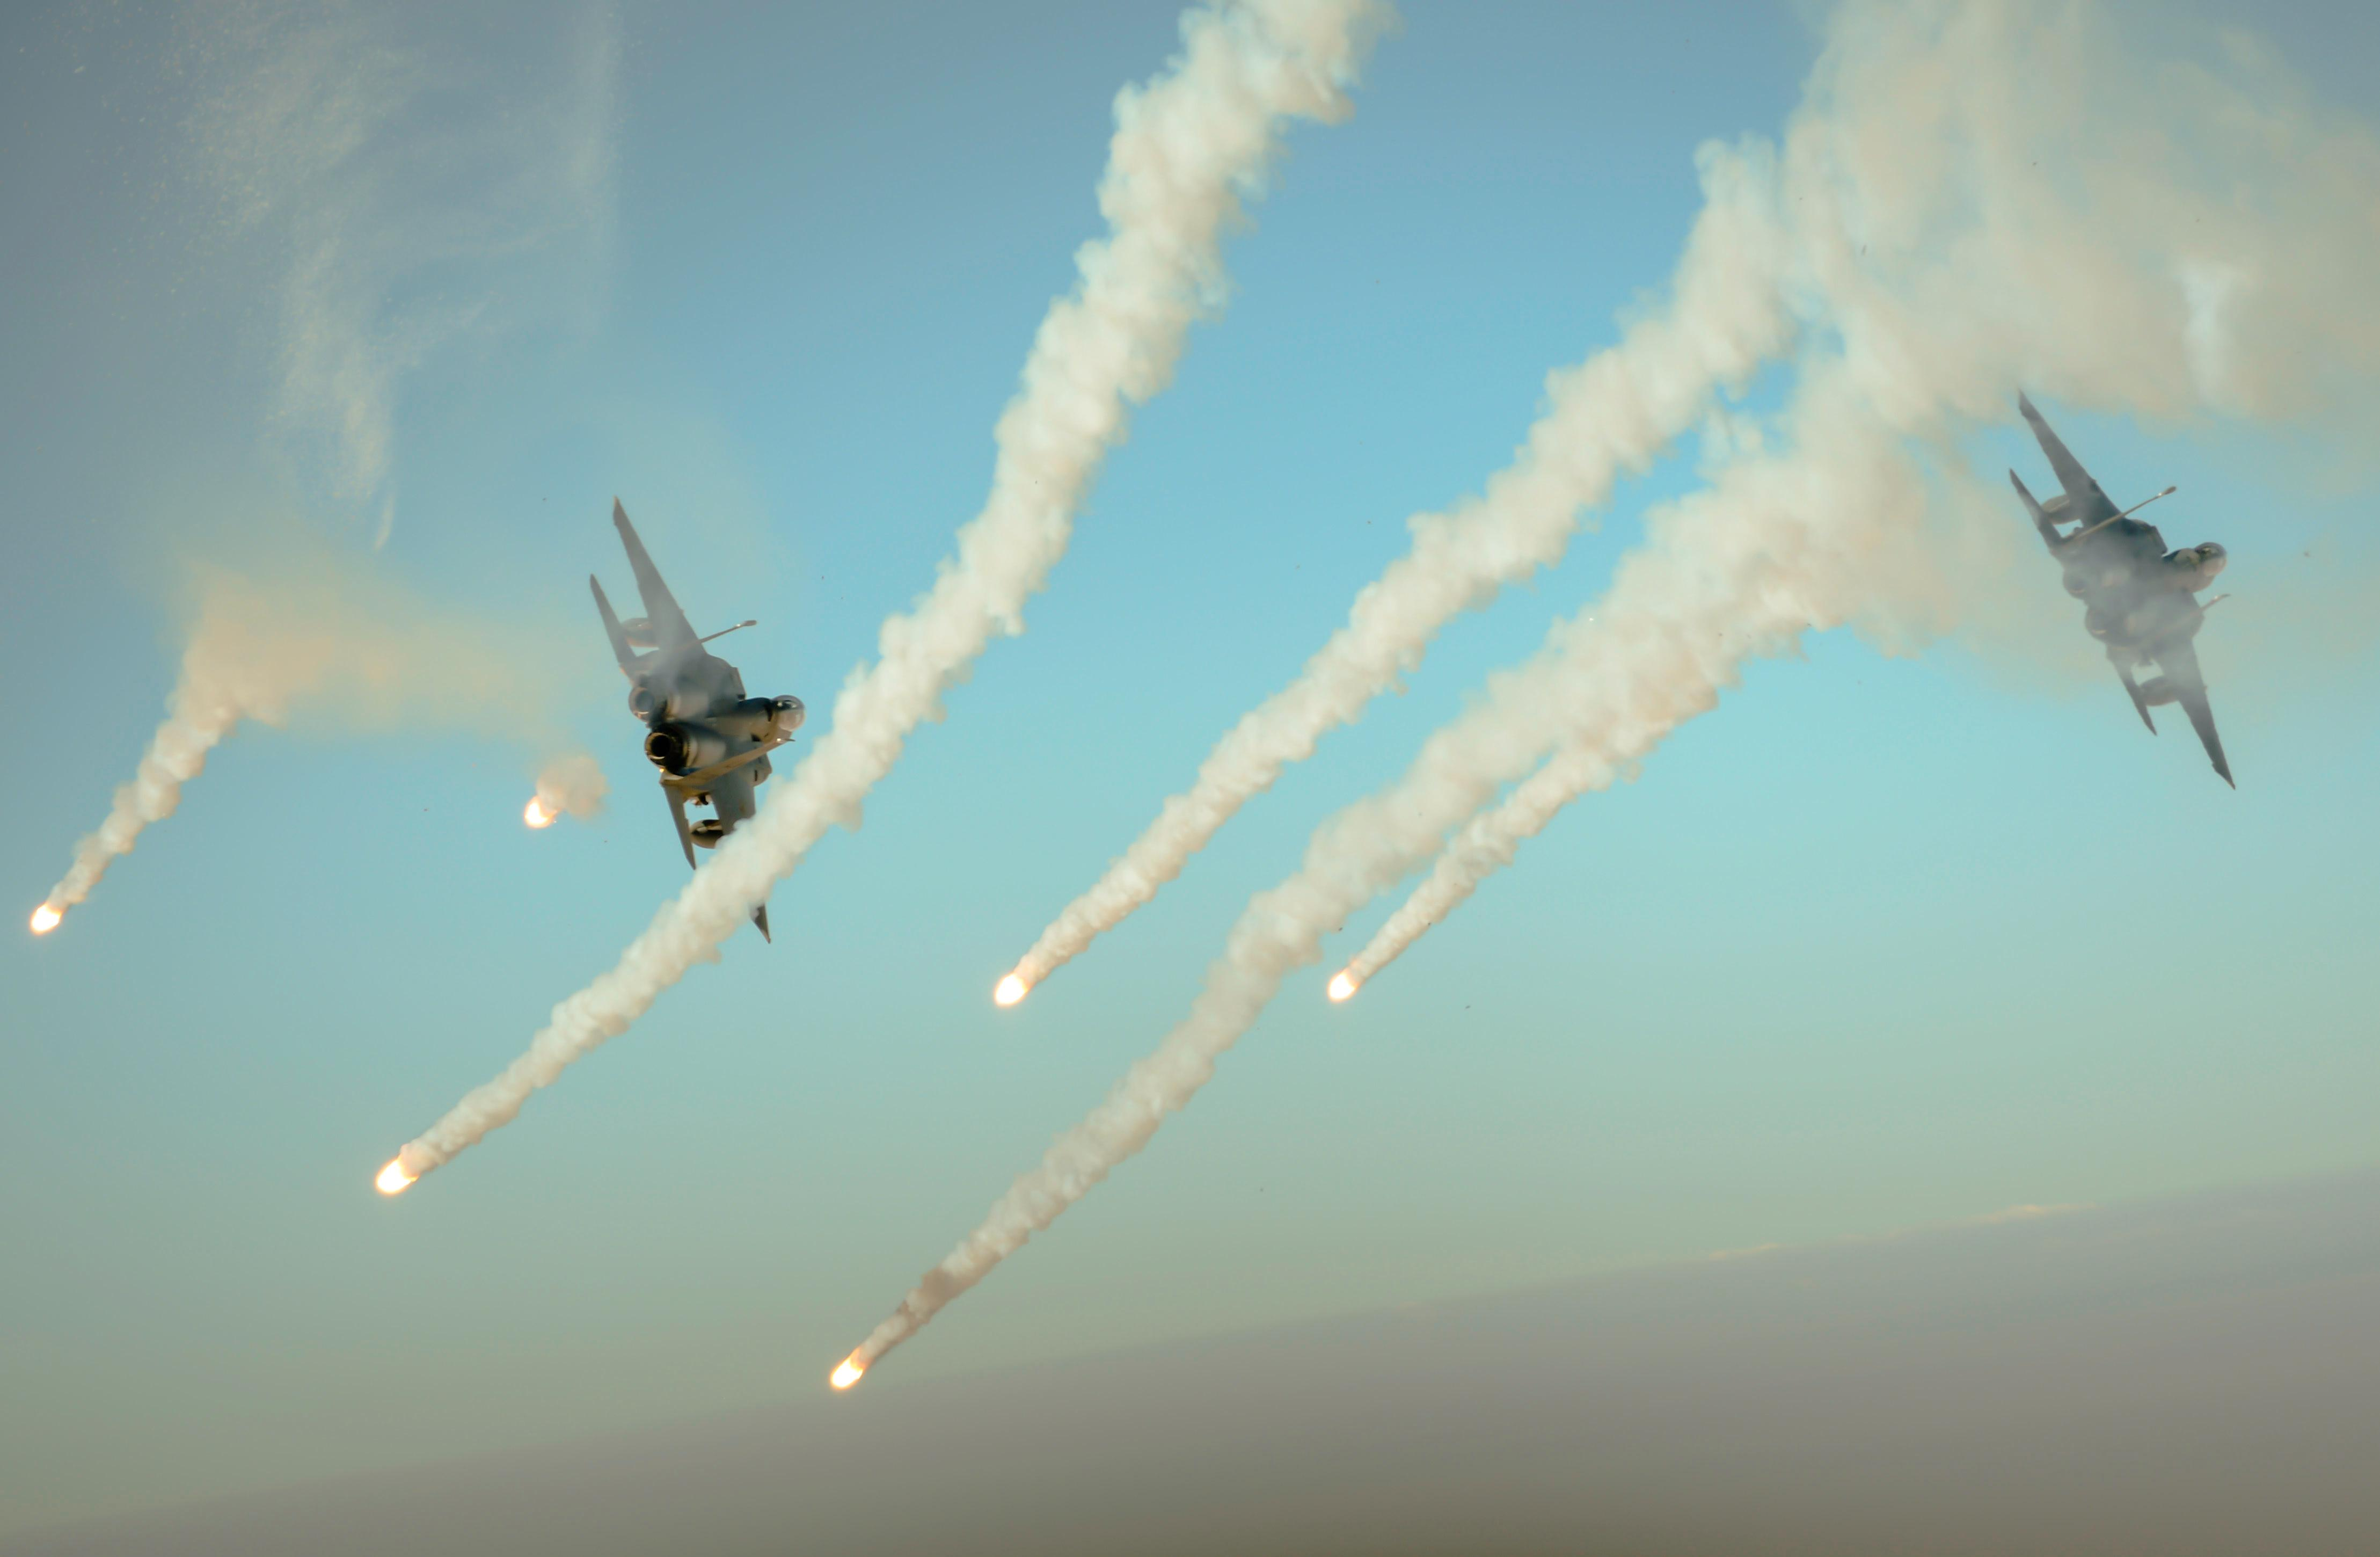 Two F-15E Strike Eagles fire flares over Iraq during a mission in support of Operation Inherent Resolve, on Sept. 6, 2017. The F-15E Strike Eagle is a dual-role fighter designed to perform air-to-air and air-to-ground missions. An array of avionics and electronics systems give the F-15E the capability to fight at low altitude, day or night, and in all weather conditions. (U.S. Air Force photo by Staff Sgt. Trevor T. McBride)